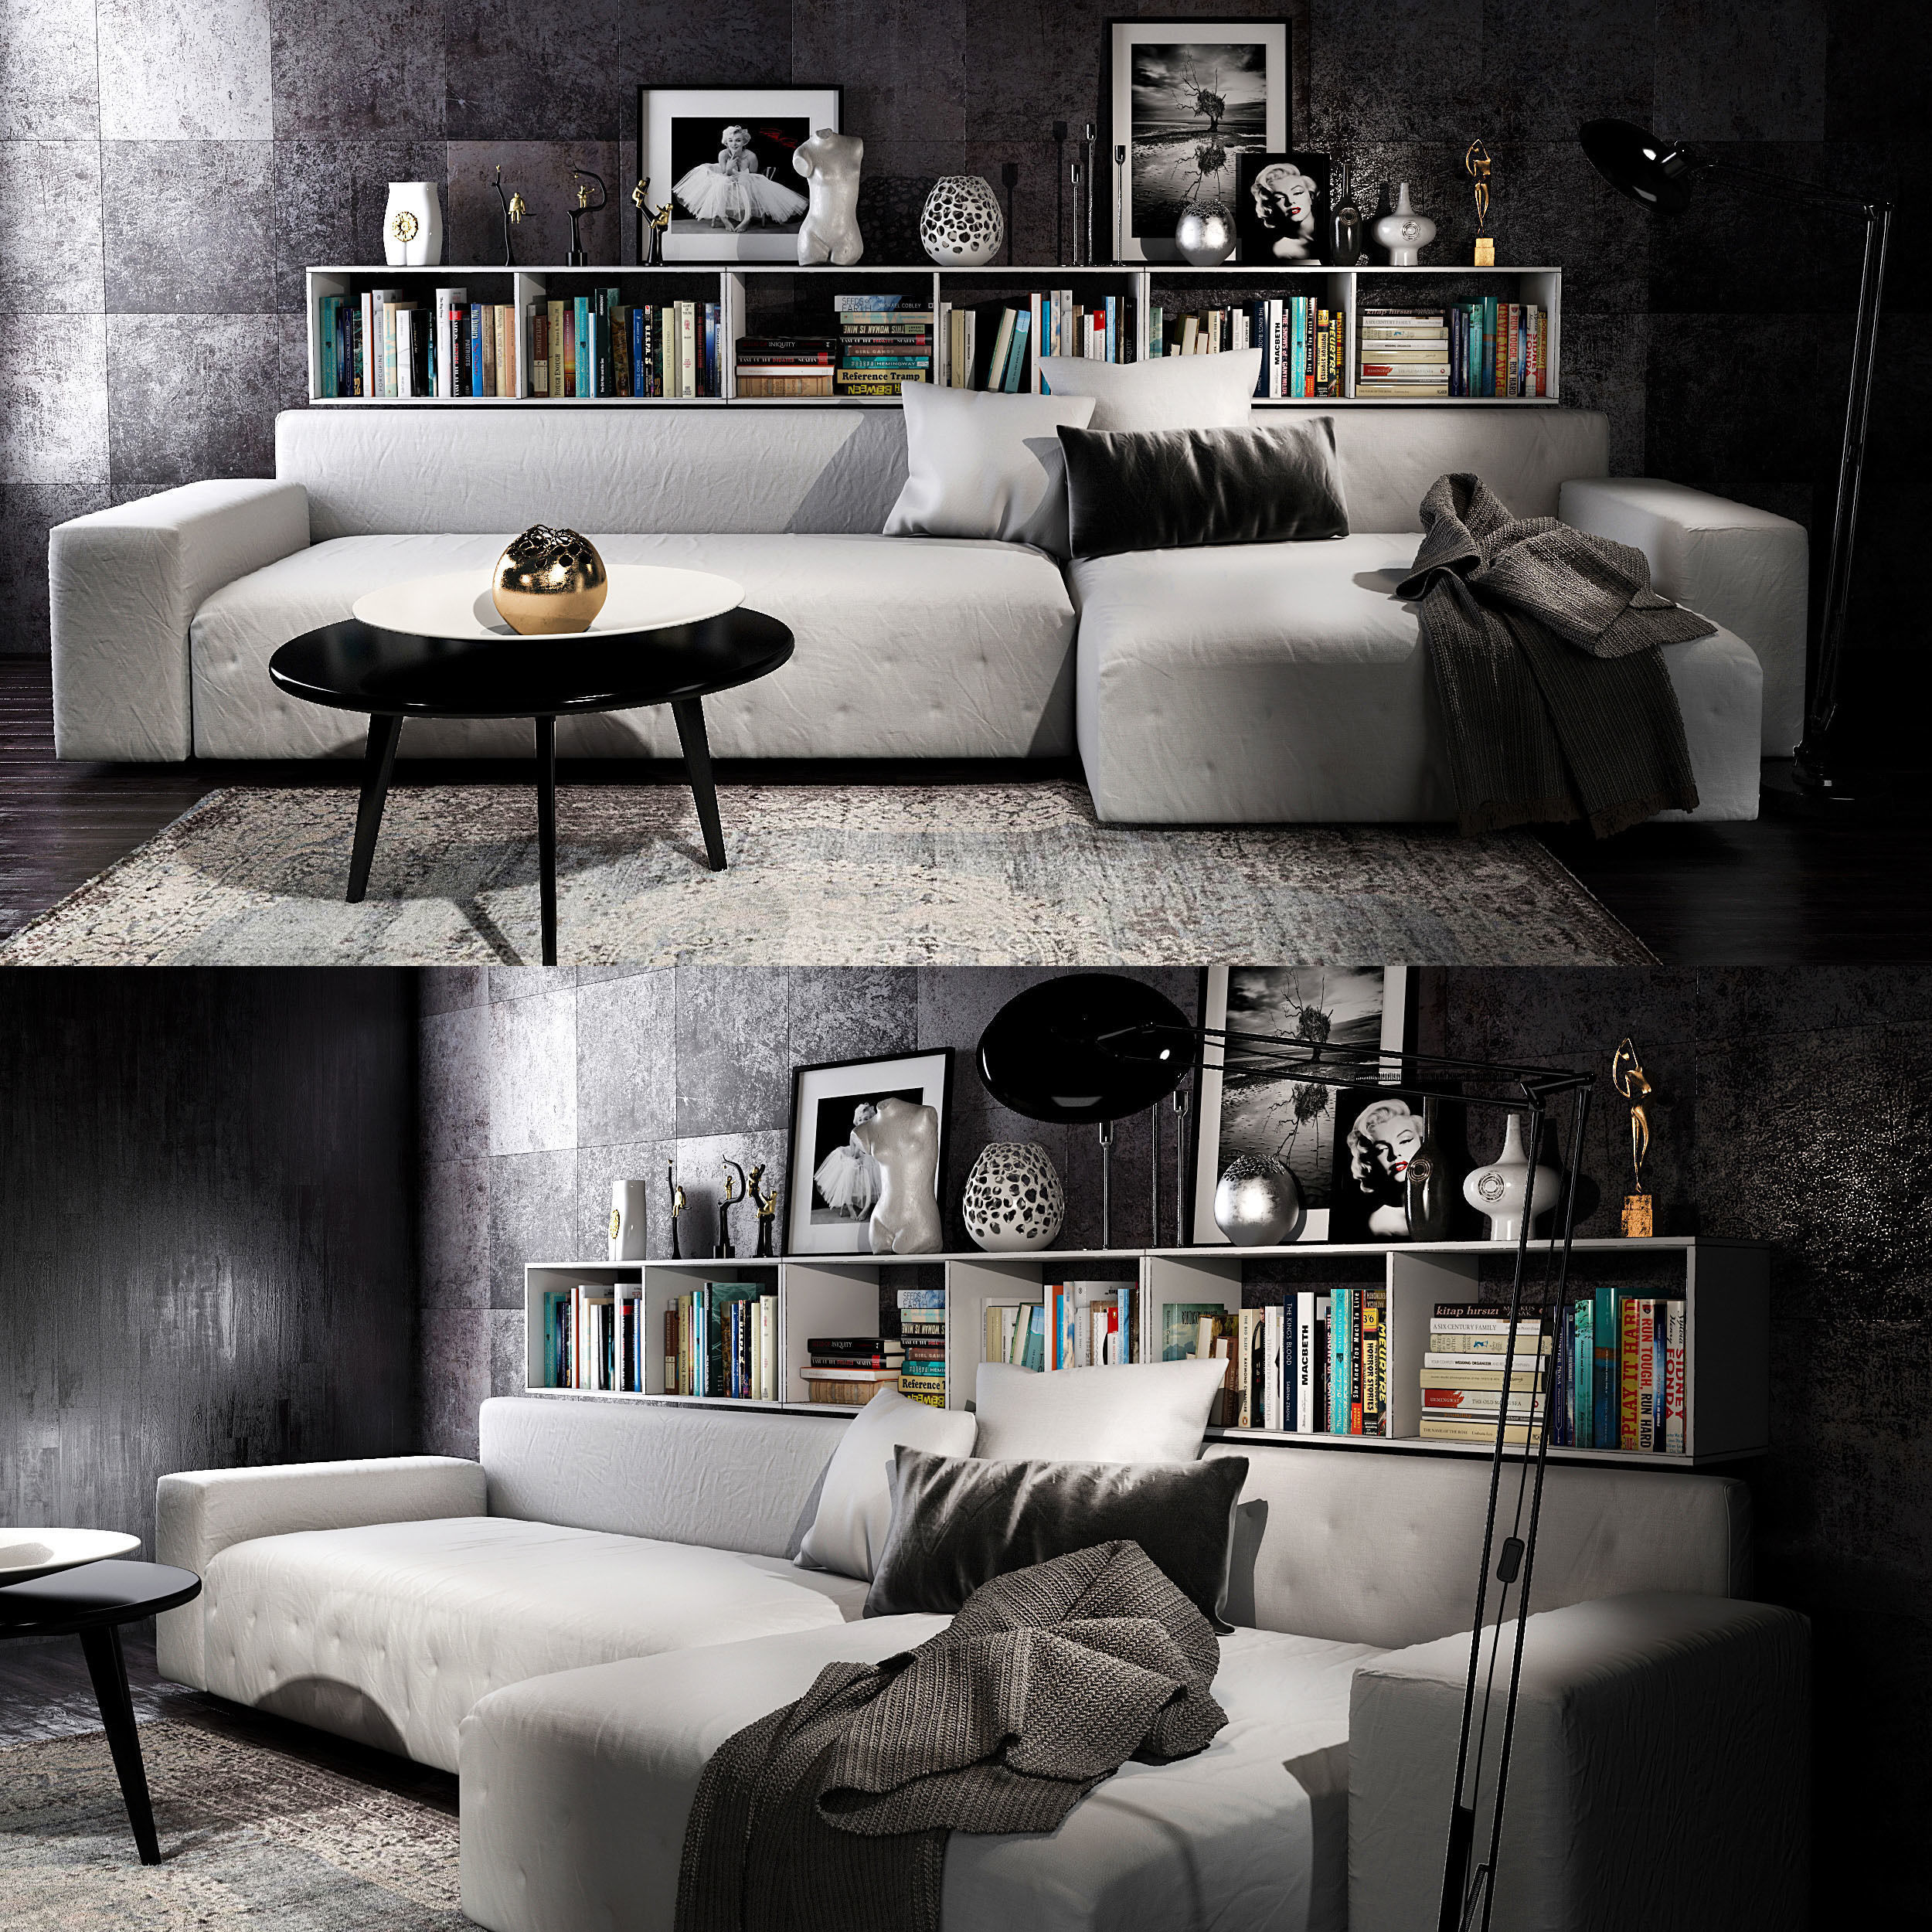 Twils livingroom set | 3D model